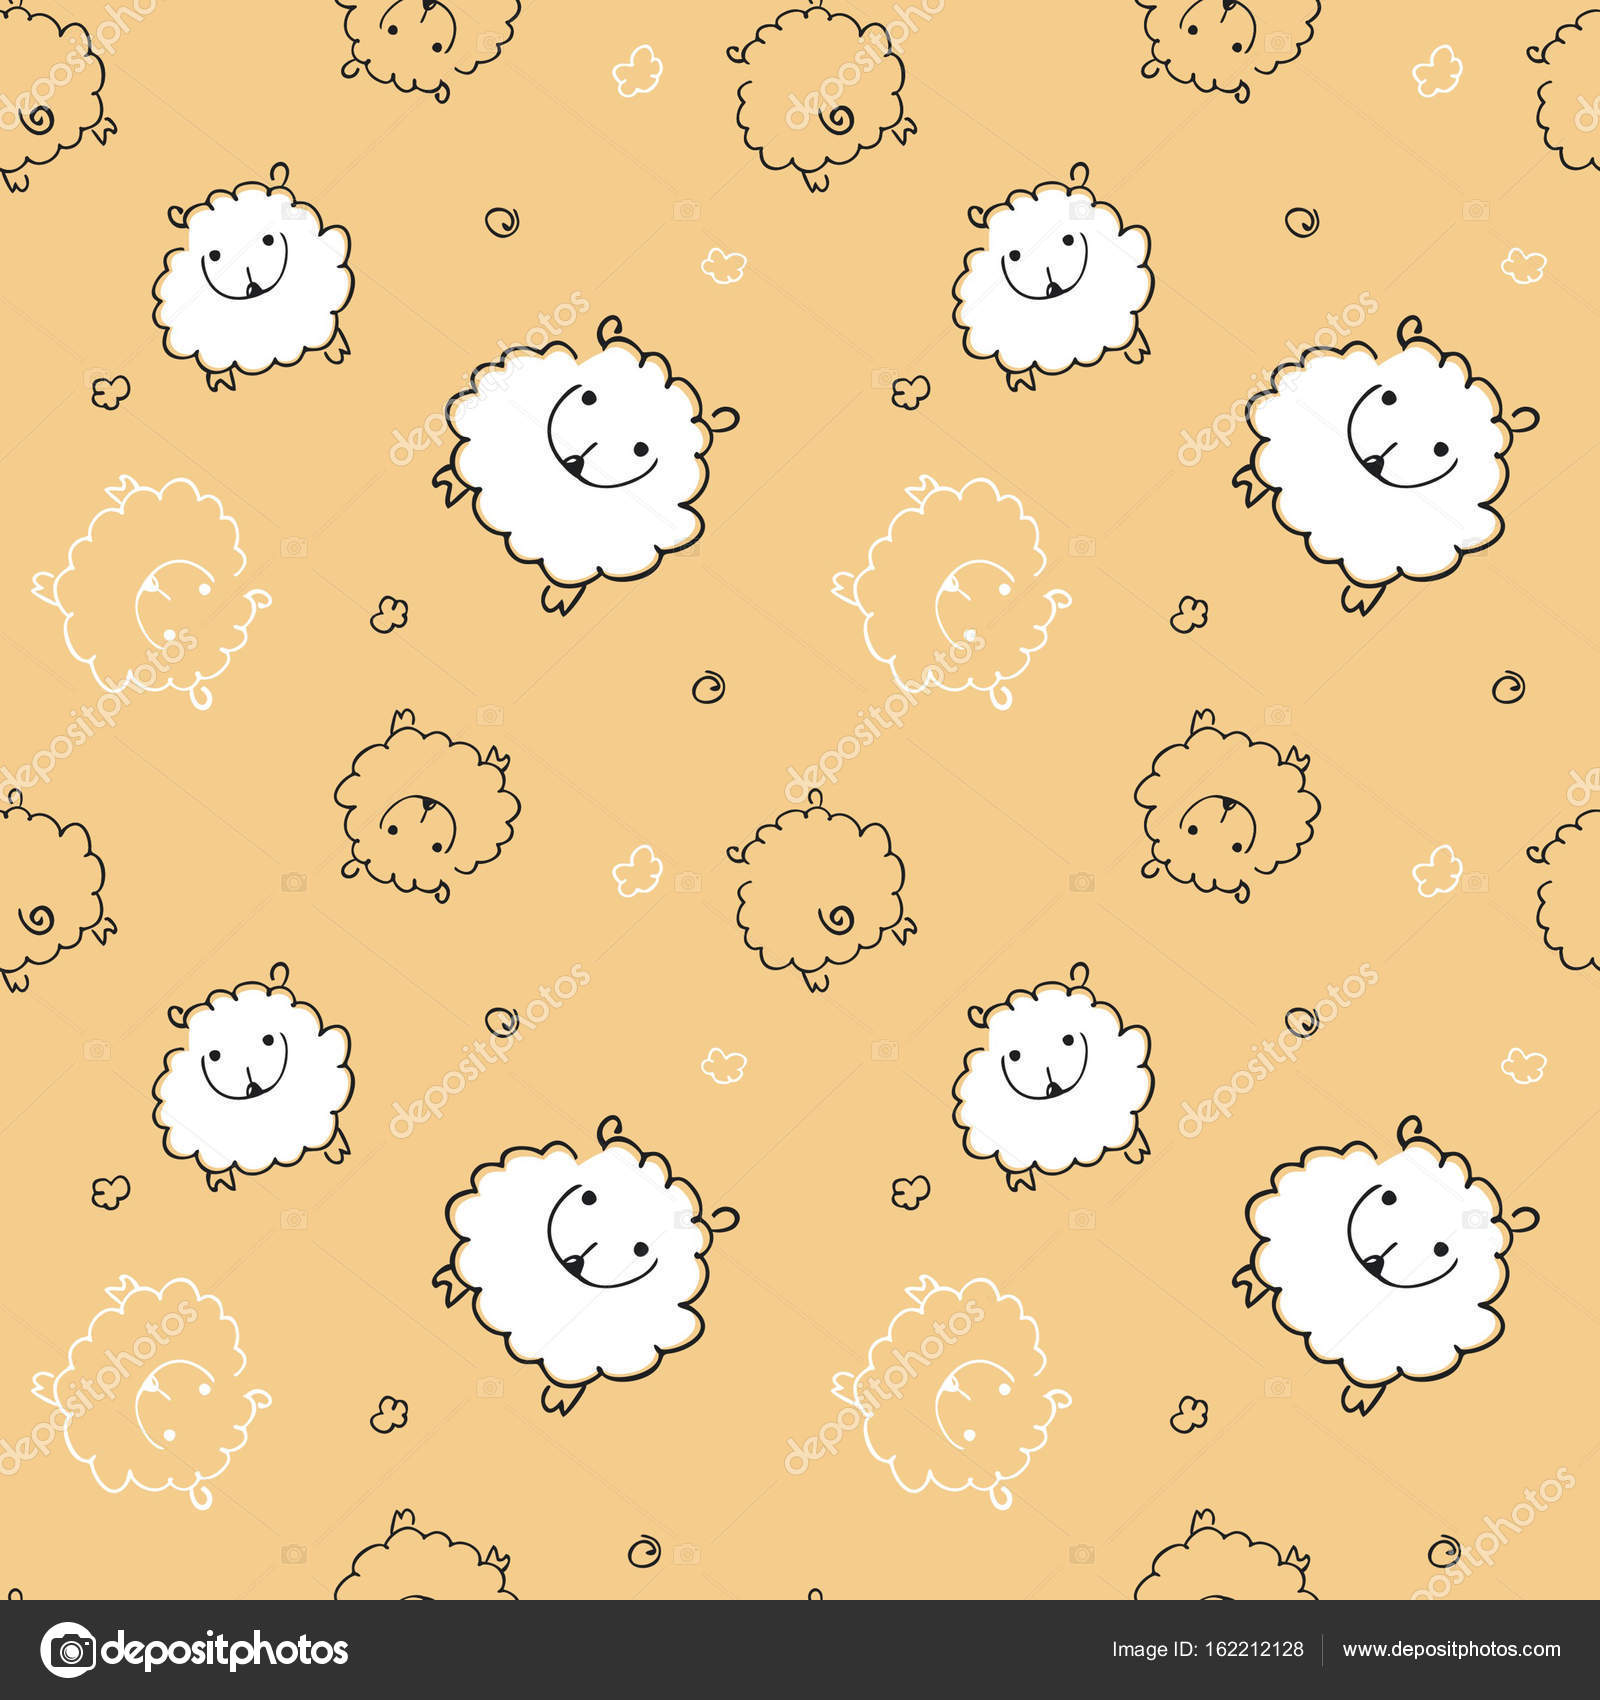 Seamless Pattern With Funny Sheep On A Beige Background Child For Textiles Wallpaper